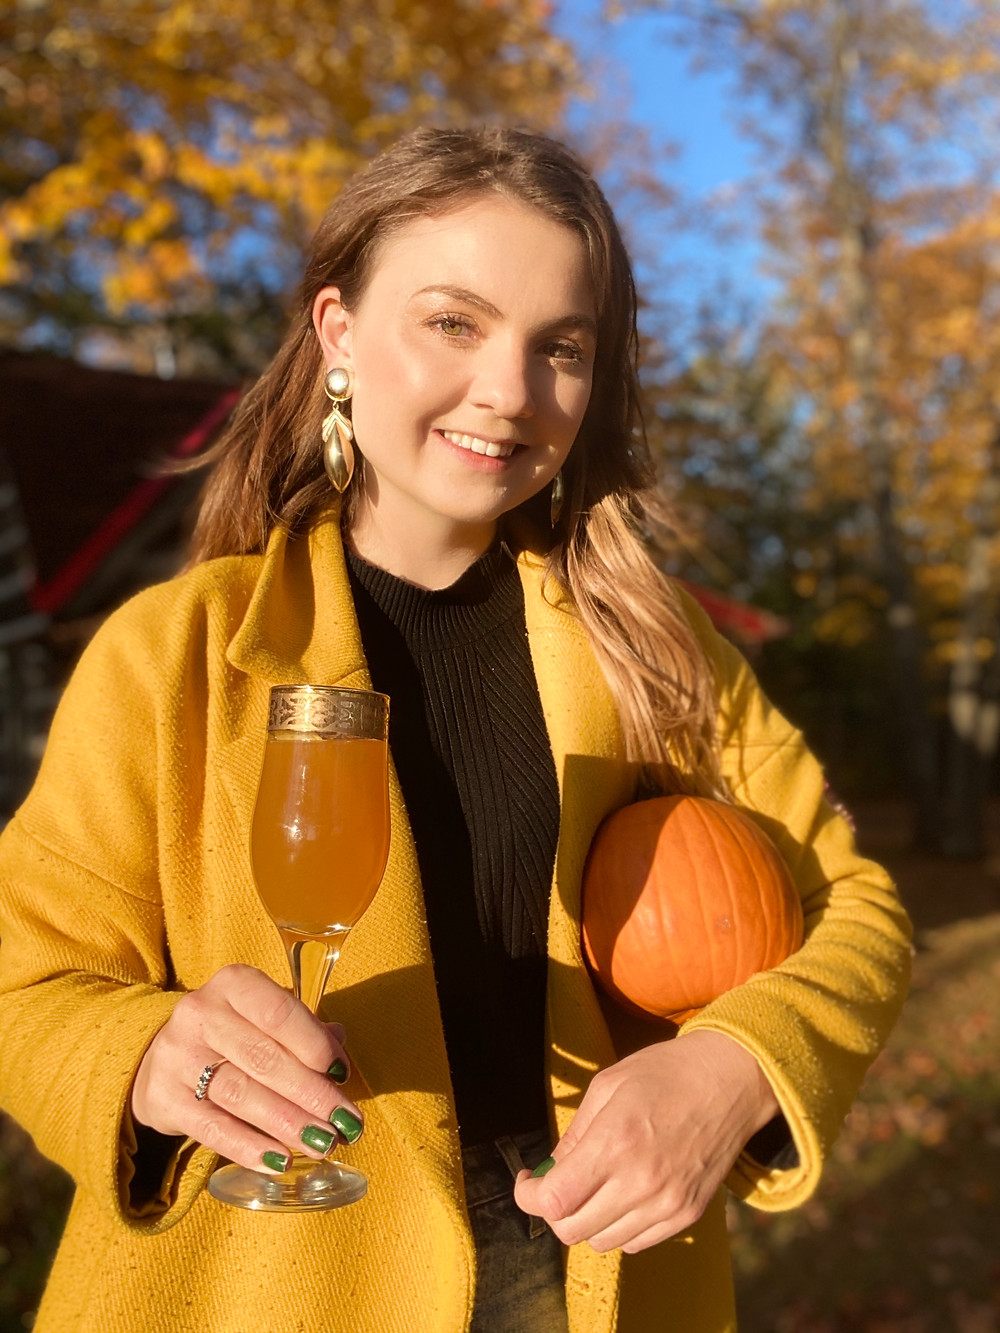 Rebecca standing amid autumn trees, holding her pumpkin spiced 75 cocktail and a pumpkin.